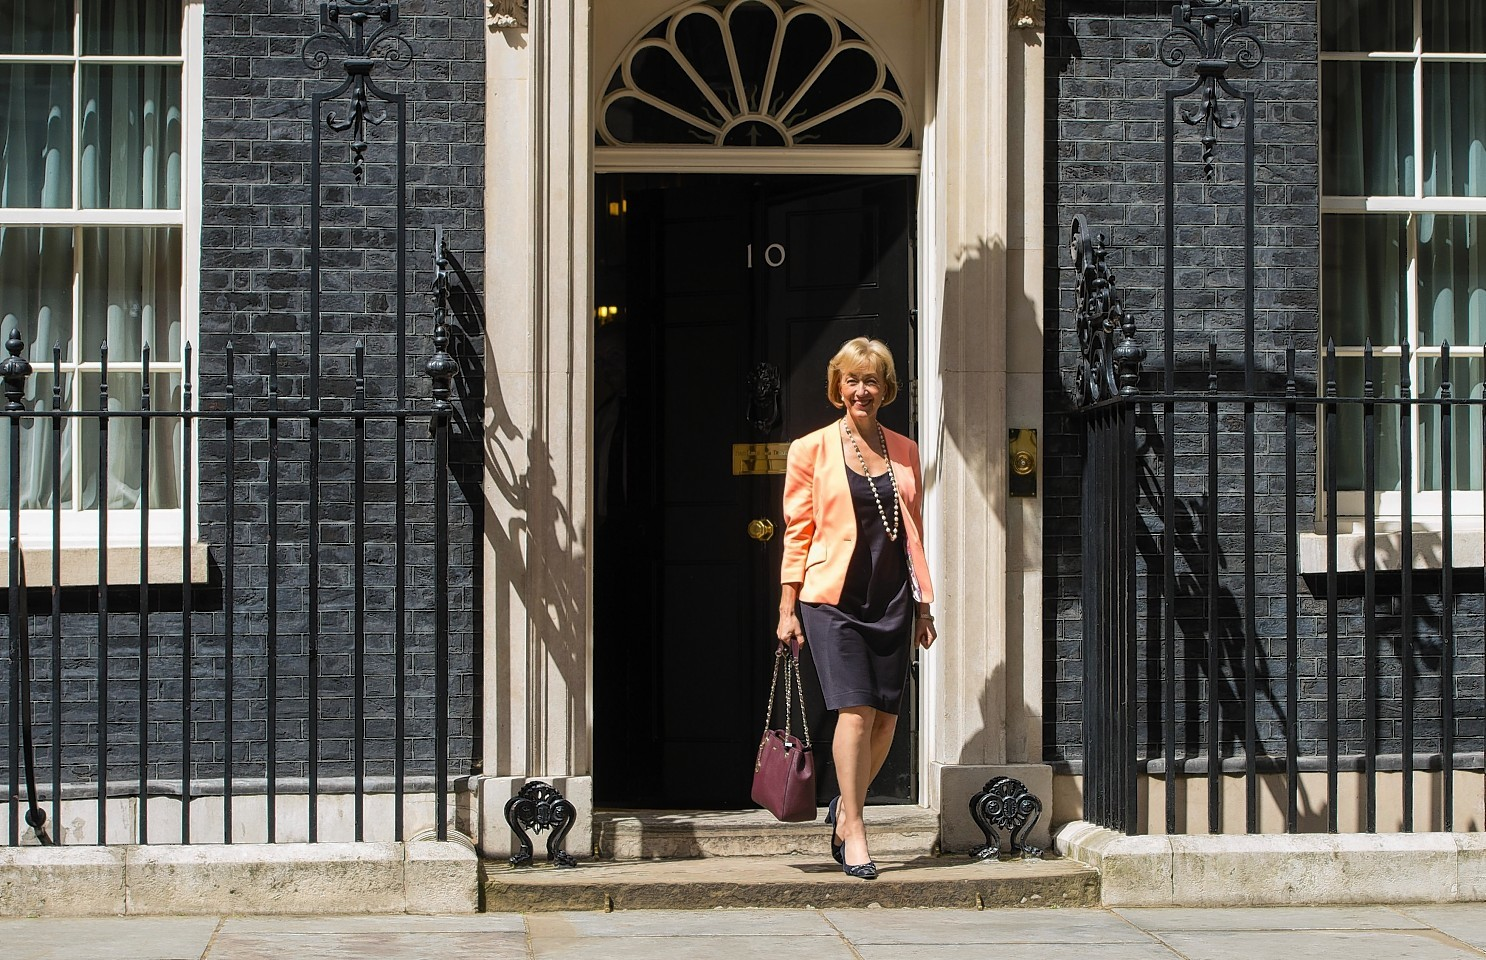 Andrea Leadsom leaves 10 Downing Street after receiving her promotion